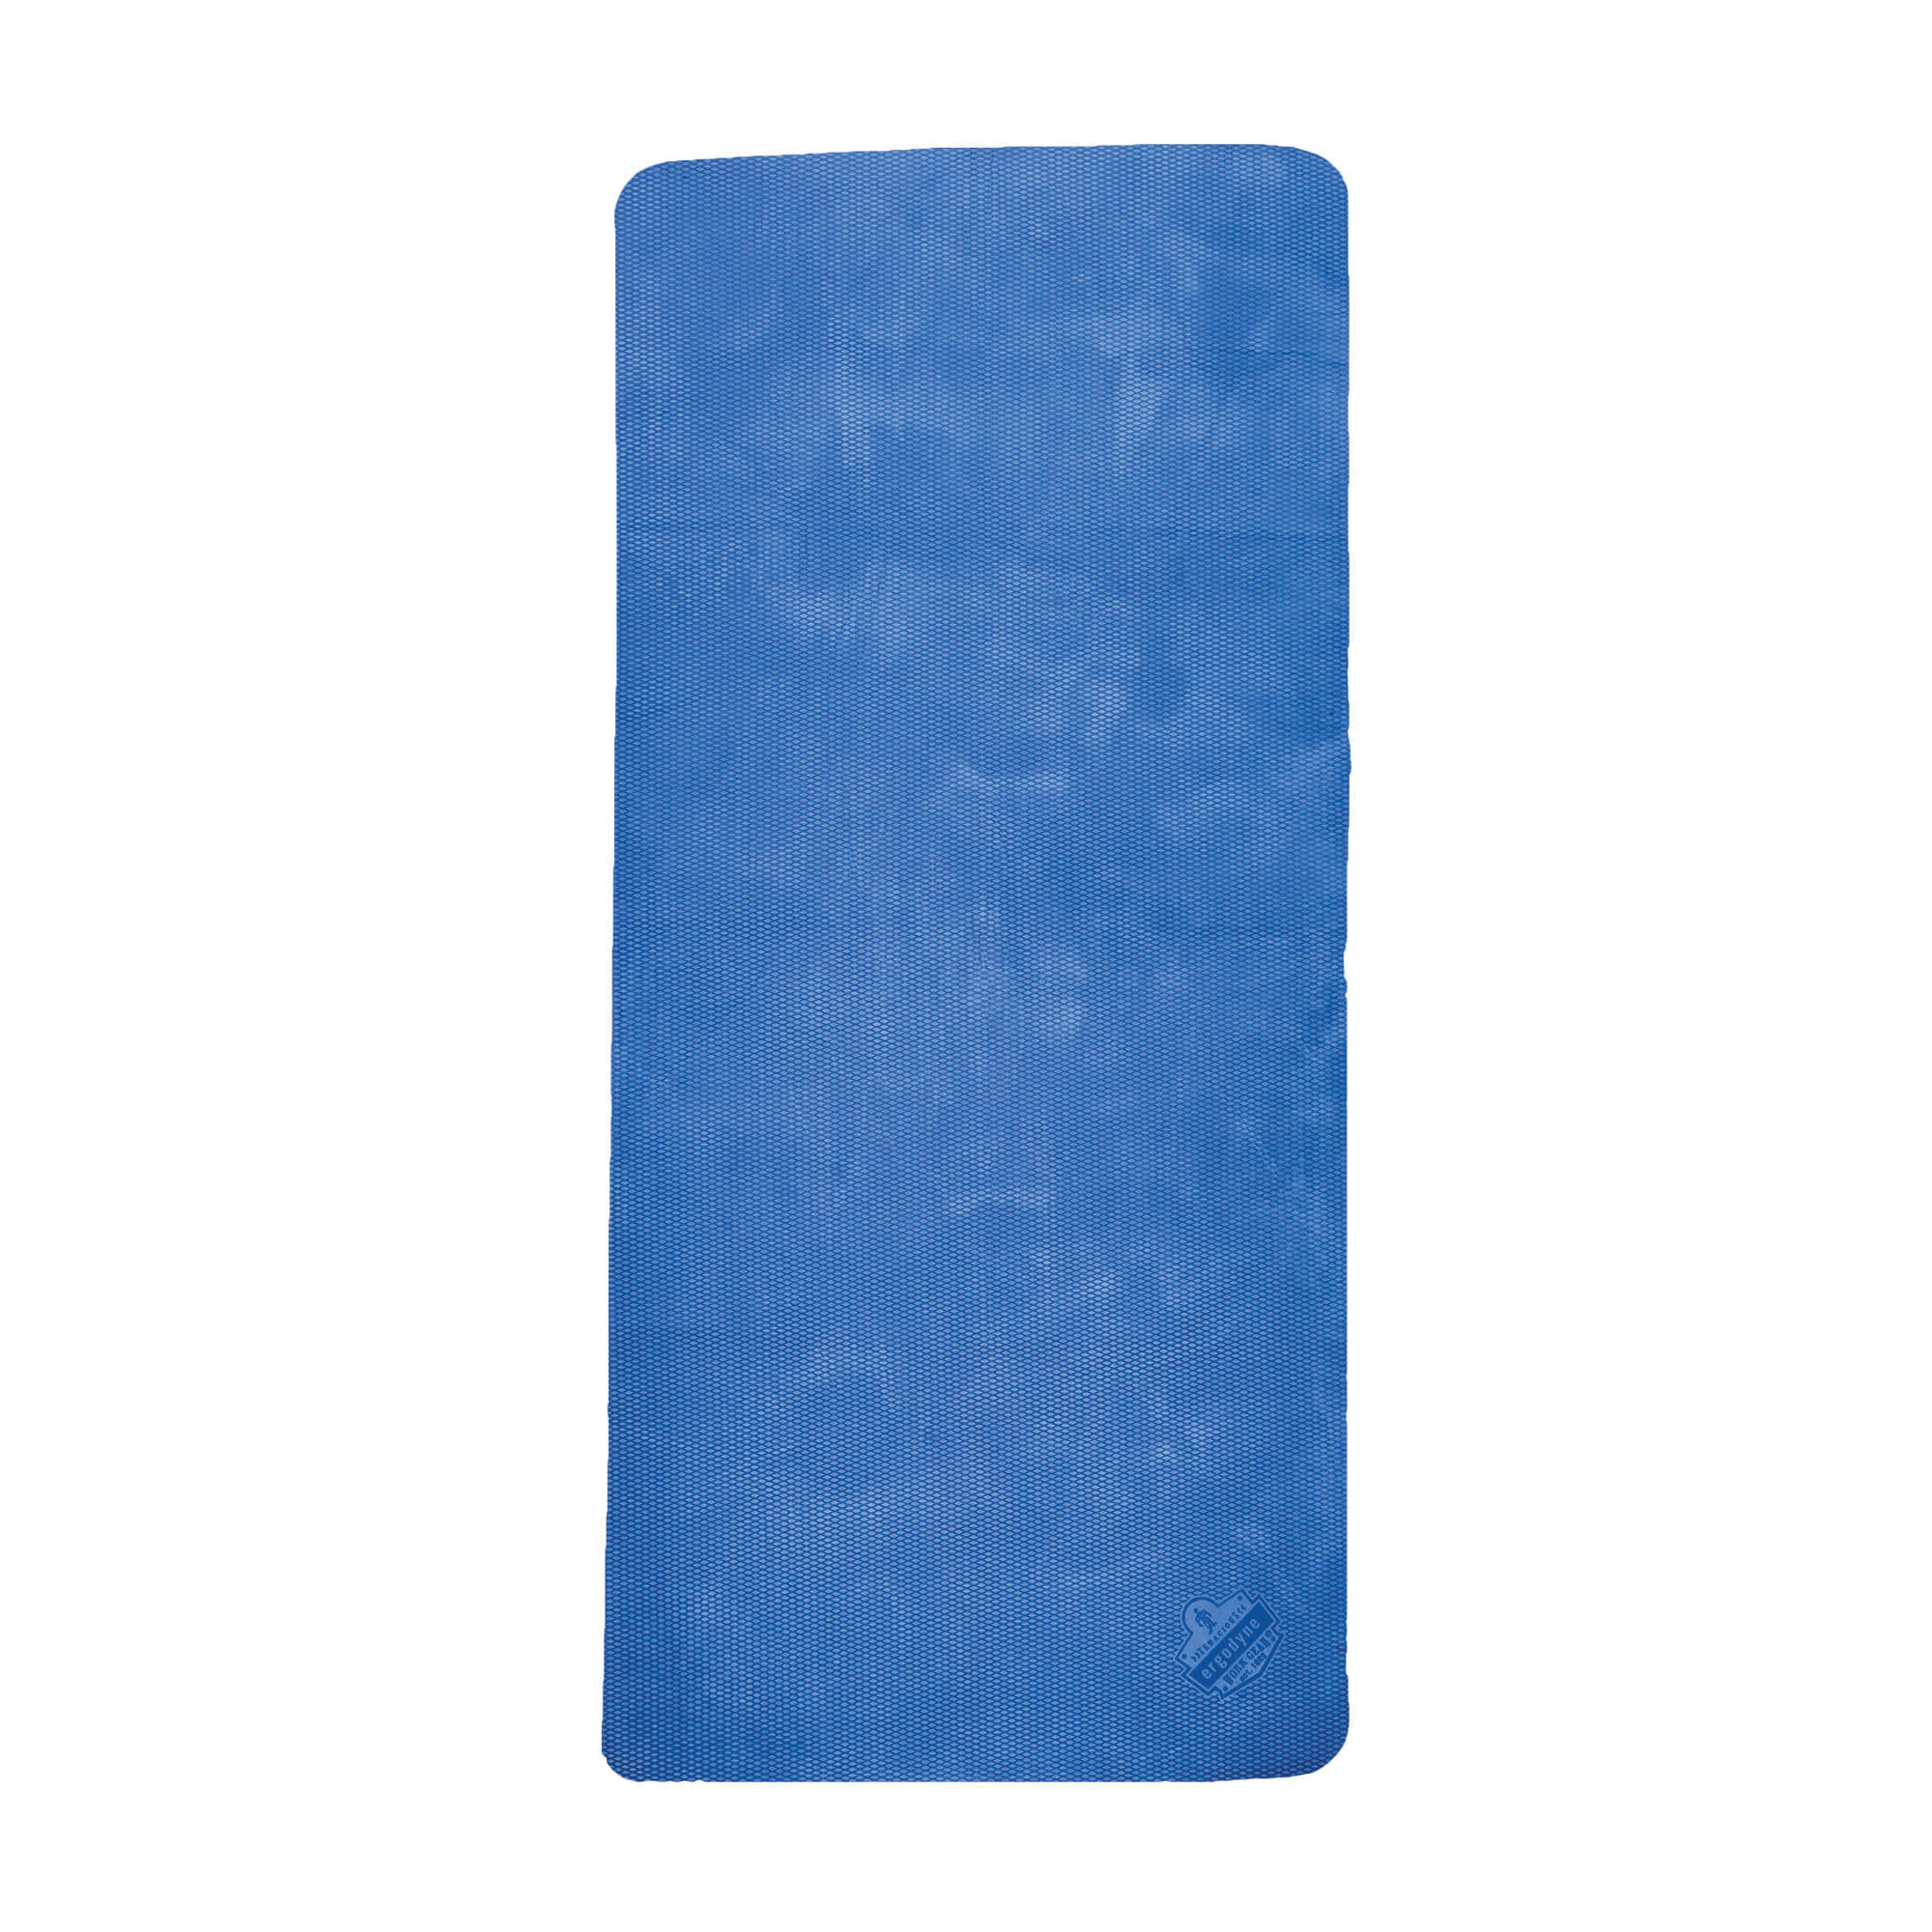 Chill-Its® 12410 6602-BULK Evaporative Cooling Towel, 29-1/2 in L x 13 in W, Blue, Synthetic